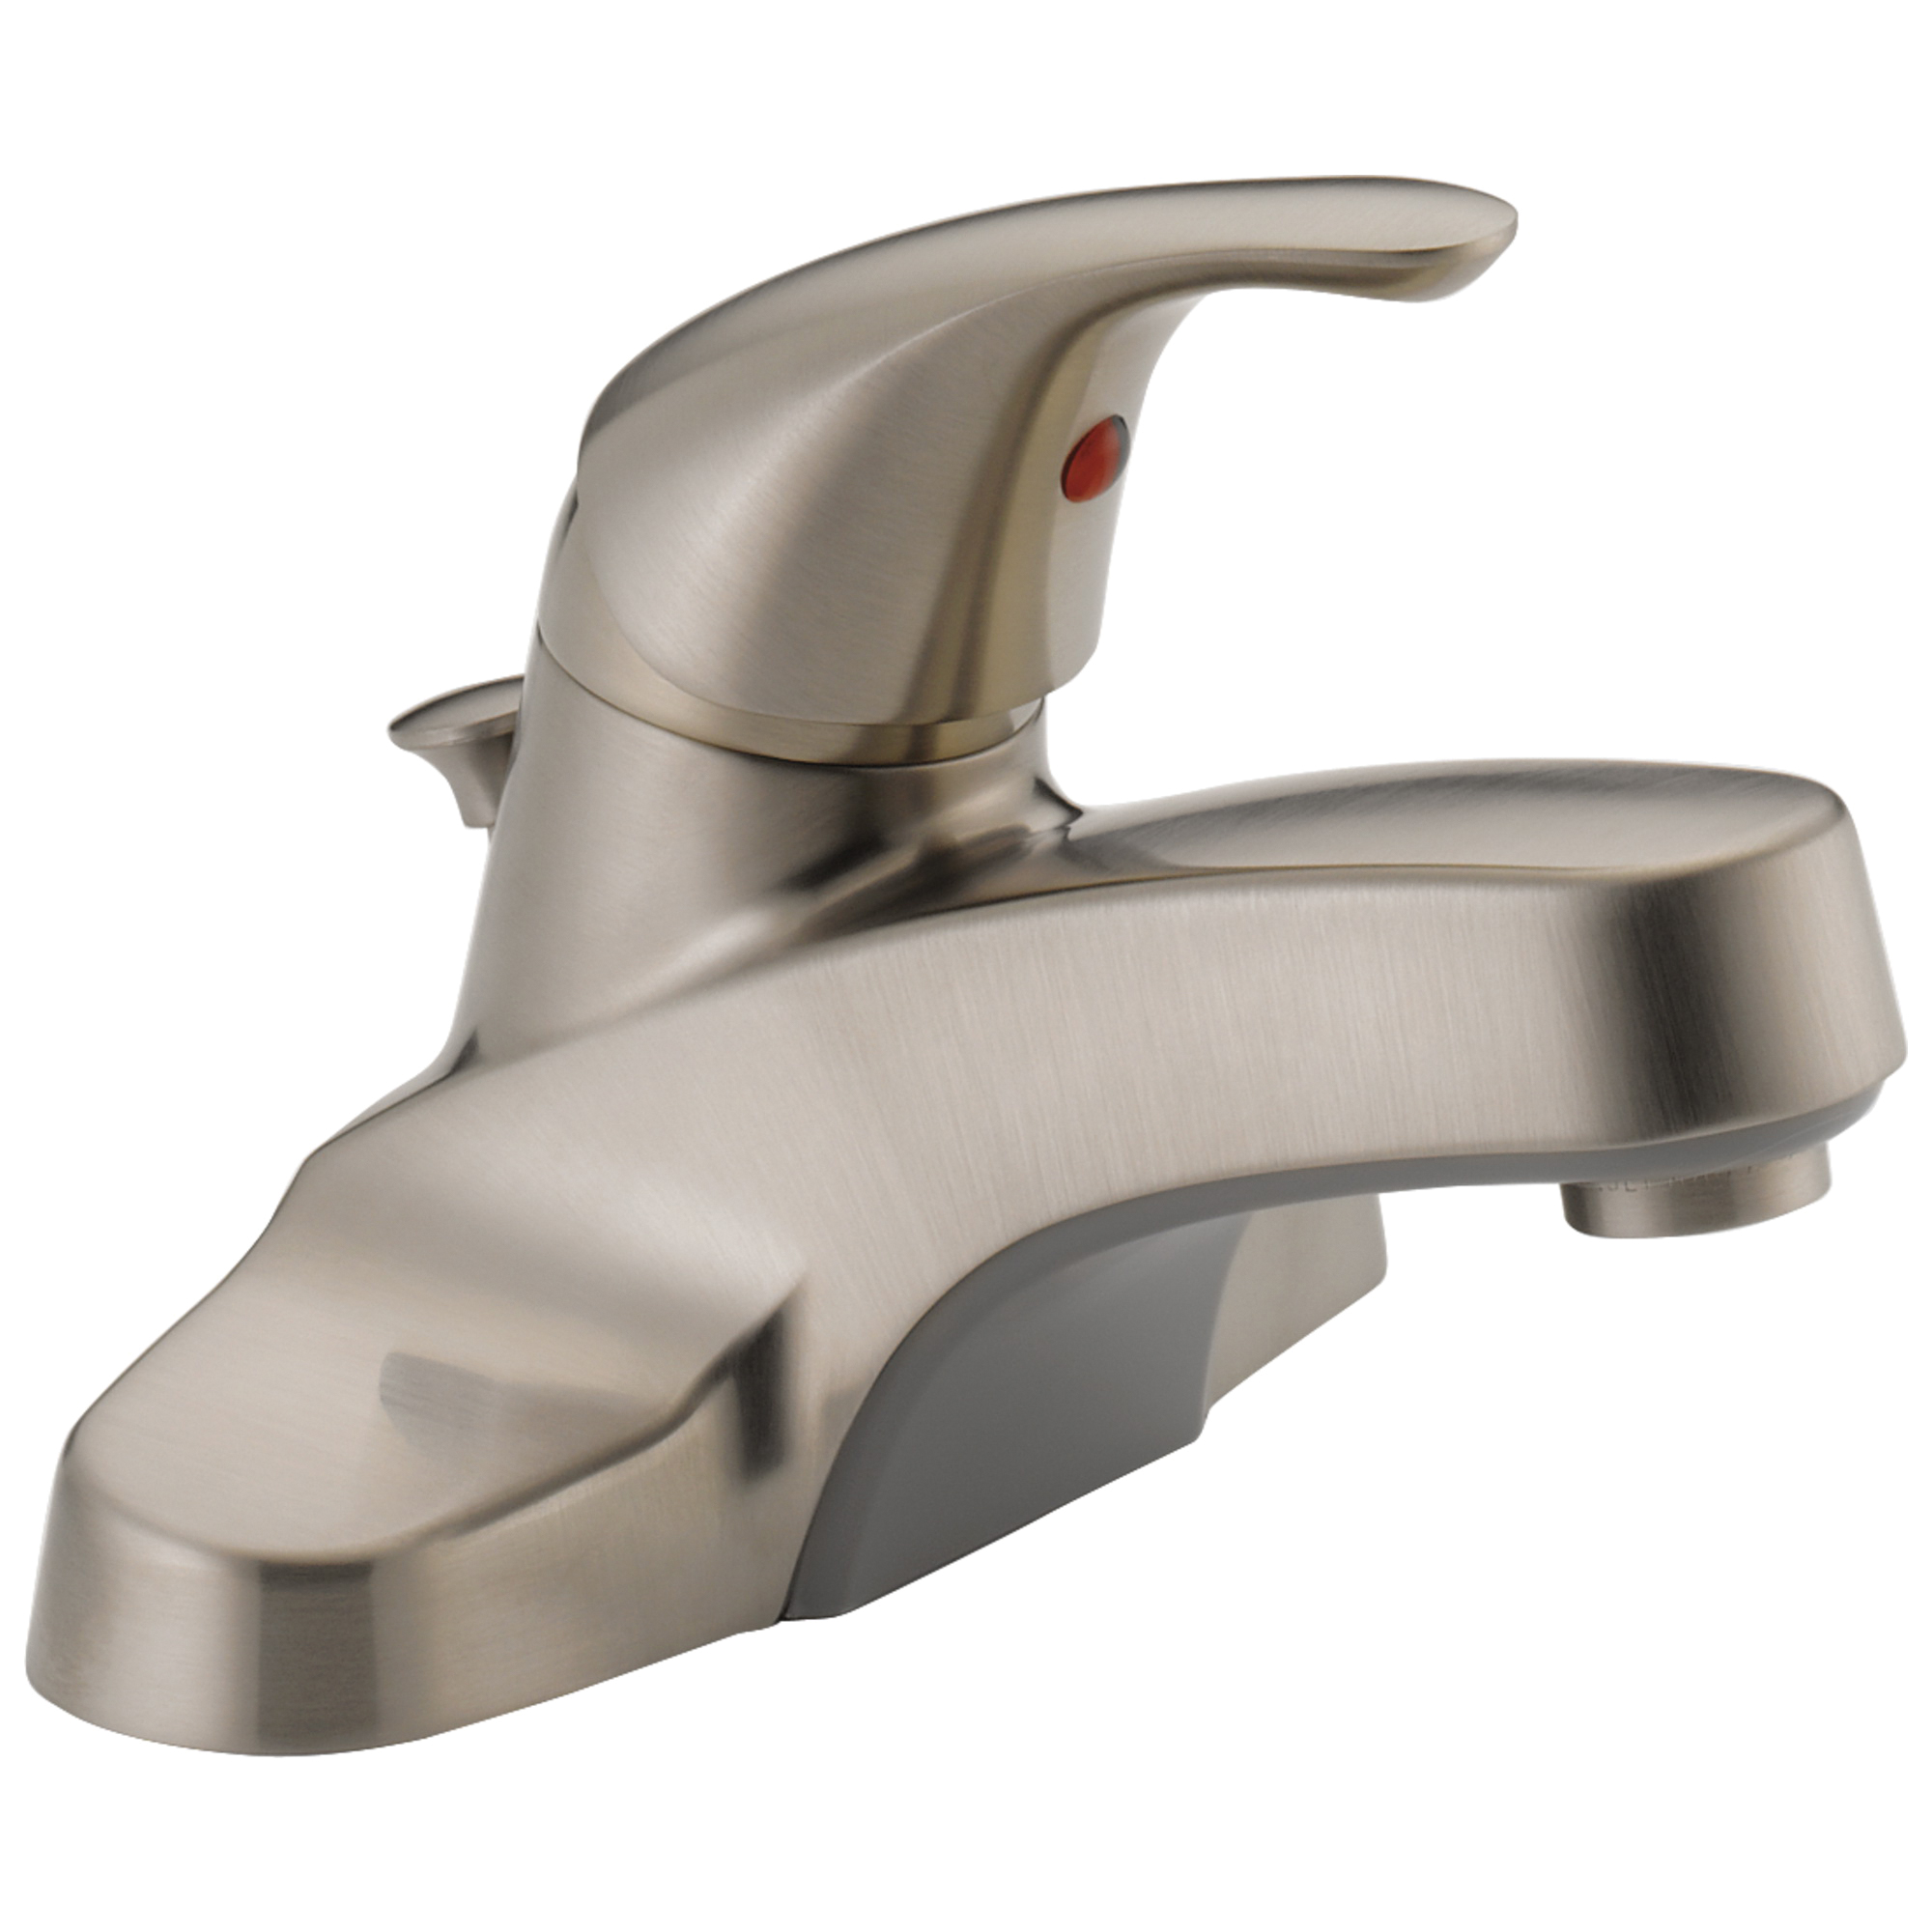 Peerless® P136LF-BN Centerset Lavatory Faucet, Brushed Nickel, 1 Handles, Plastic Pop-Up Drain, 1.2 gpm